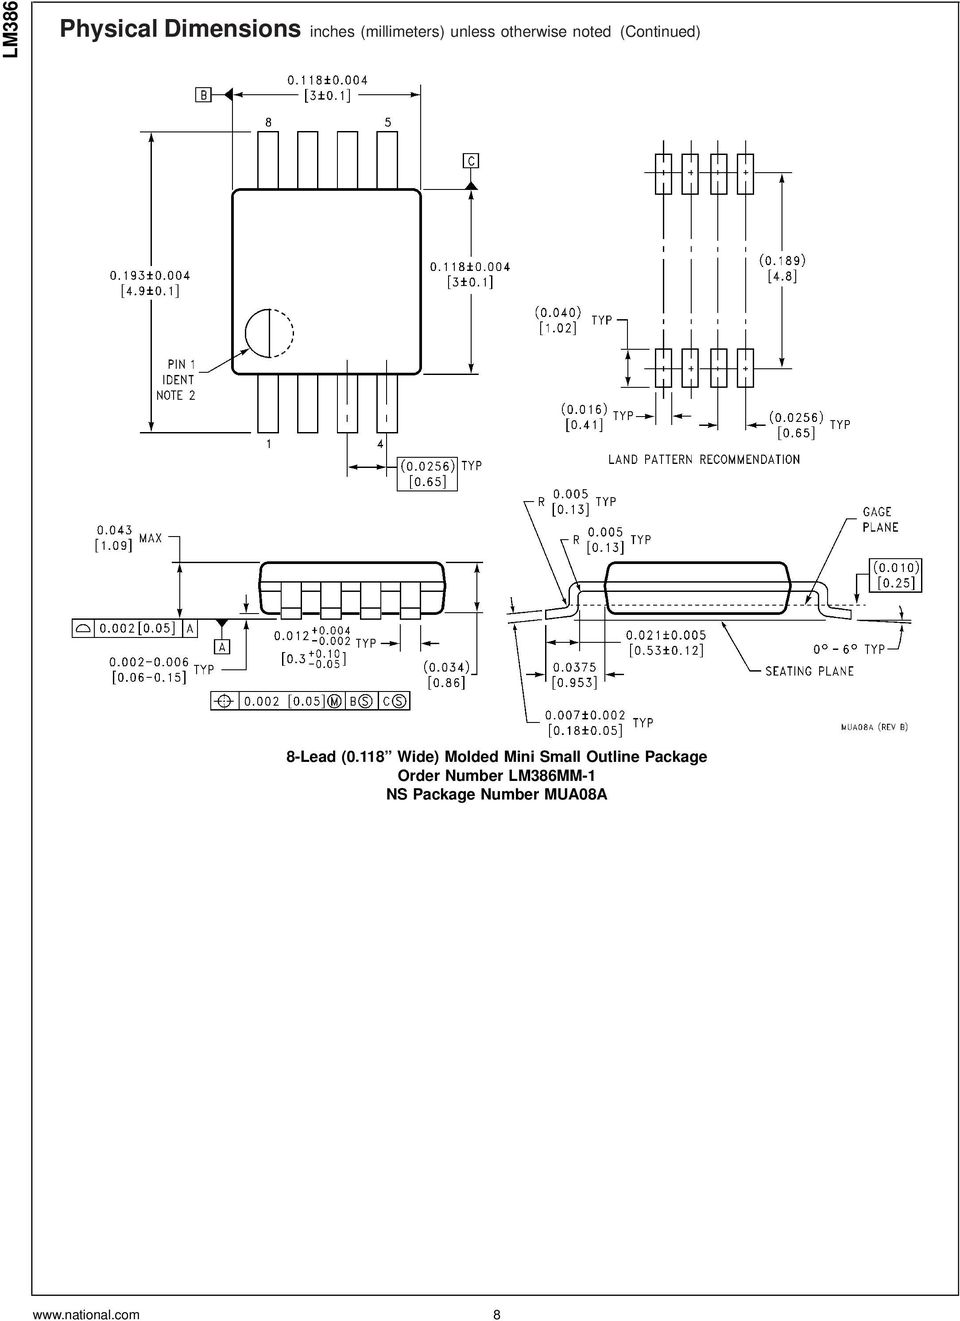 Lm386 Low Voltage Audio Power Amplifier Pdf And Cheap Systems 32w Hi Fi Circuit Diagram 118 Wide Molded Mini Small Outline Package